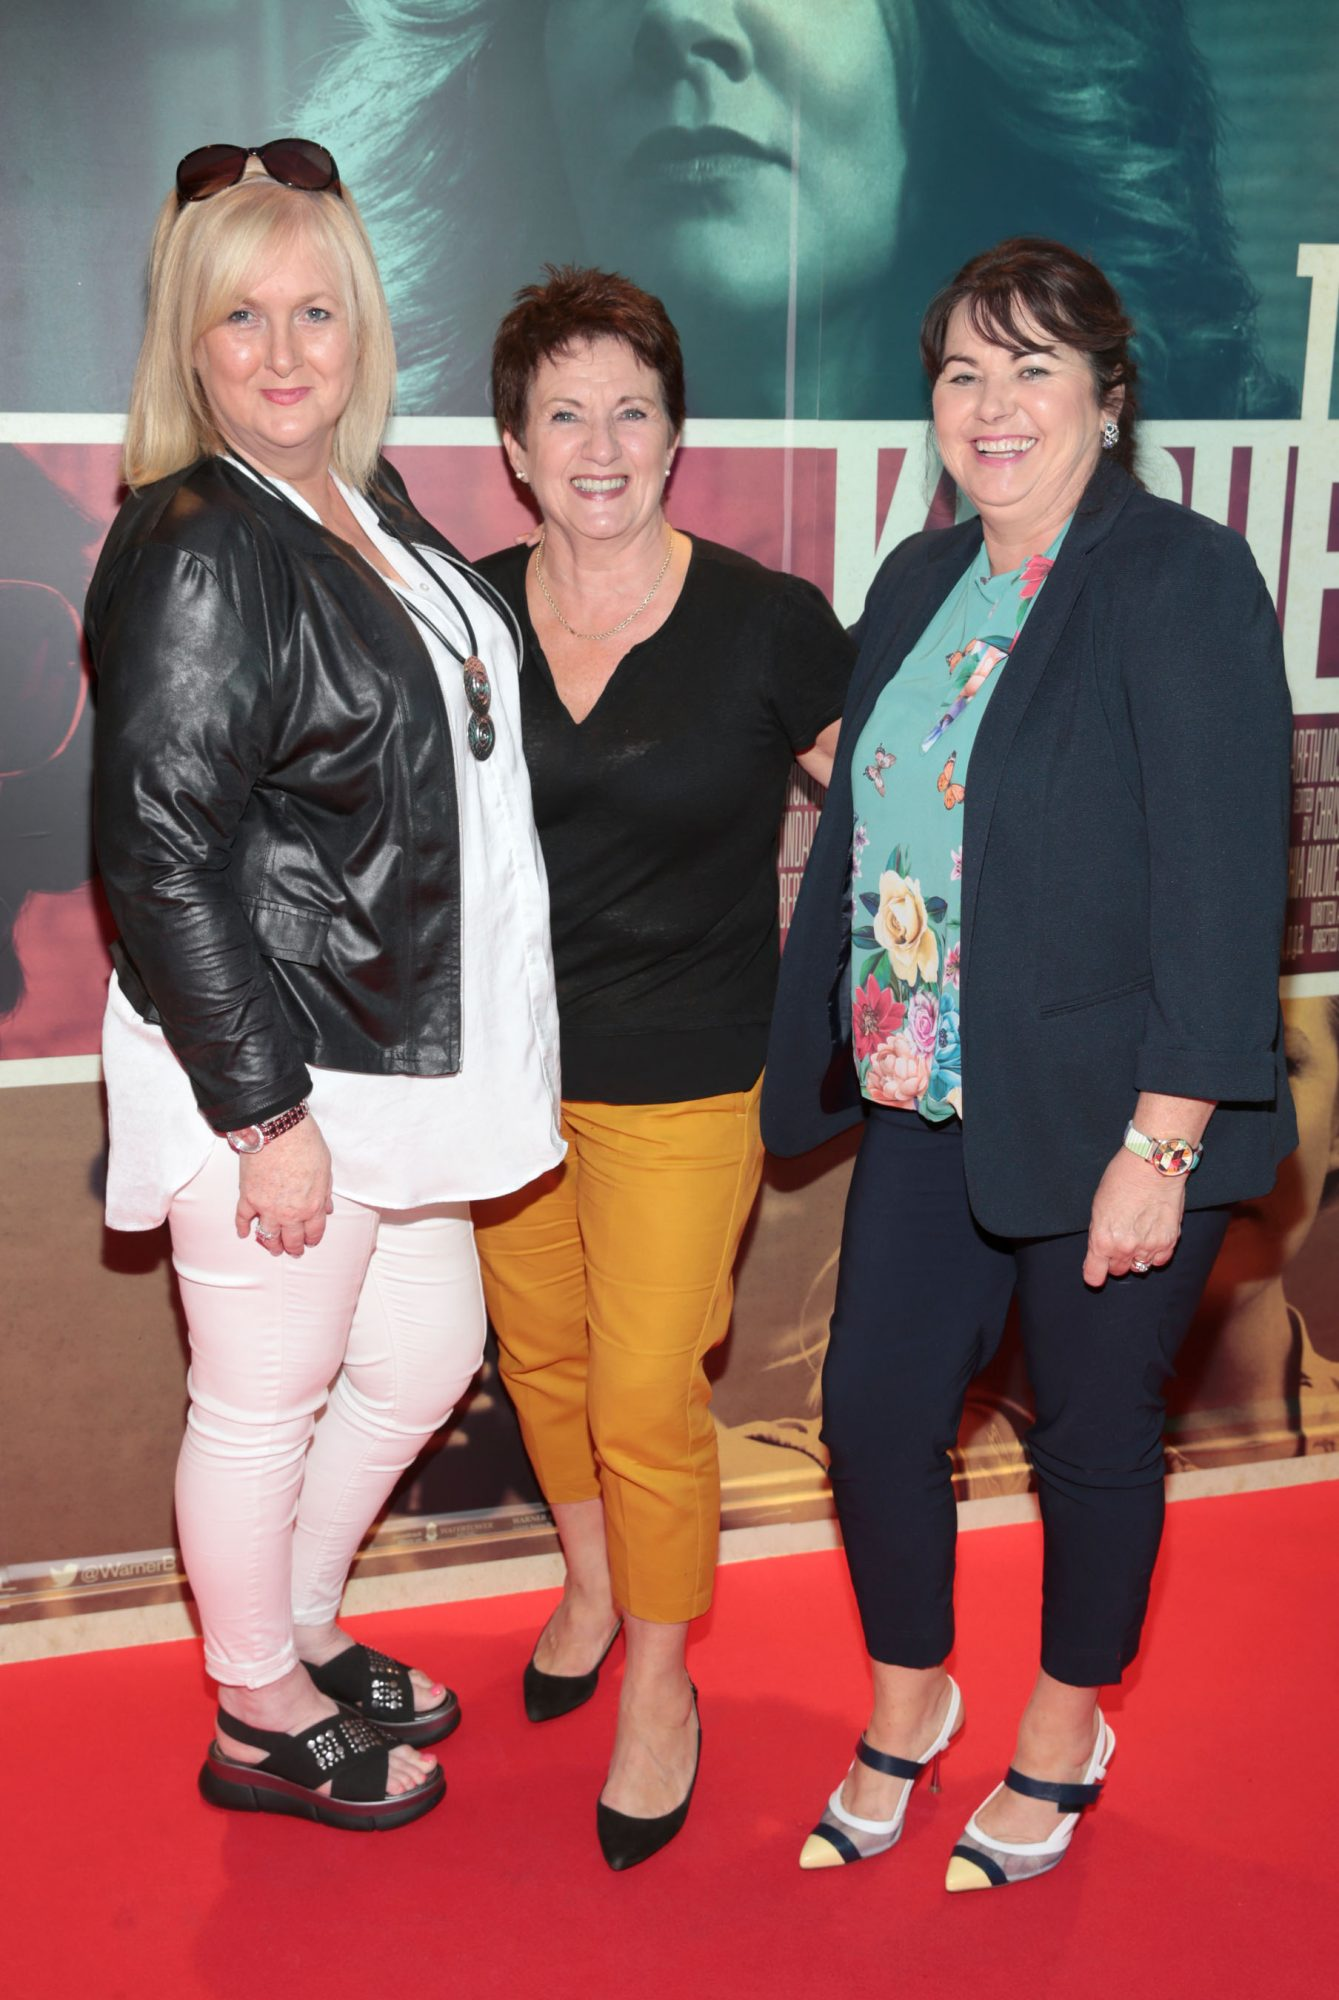 Pauline Keily, Valerie Temple and Vivienne Kavanagh at the special preview screening of The Kitchen at Cineworld, Dublin.  Picture: Brian McEvoy